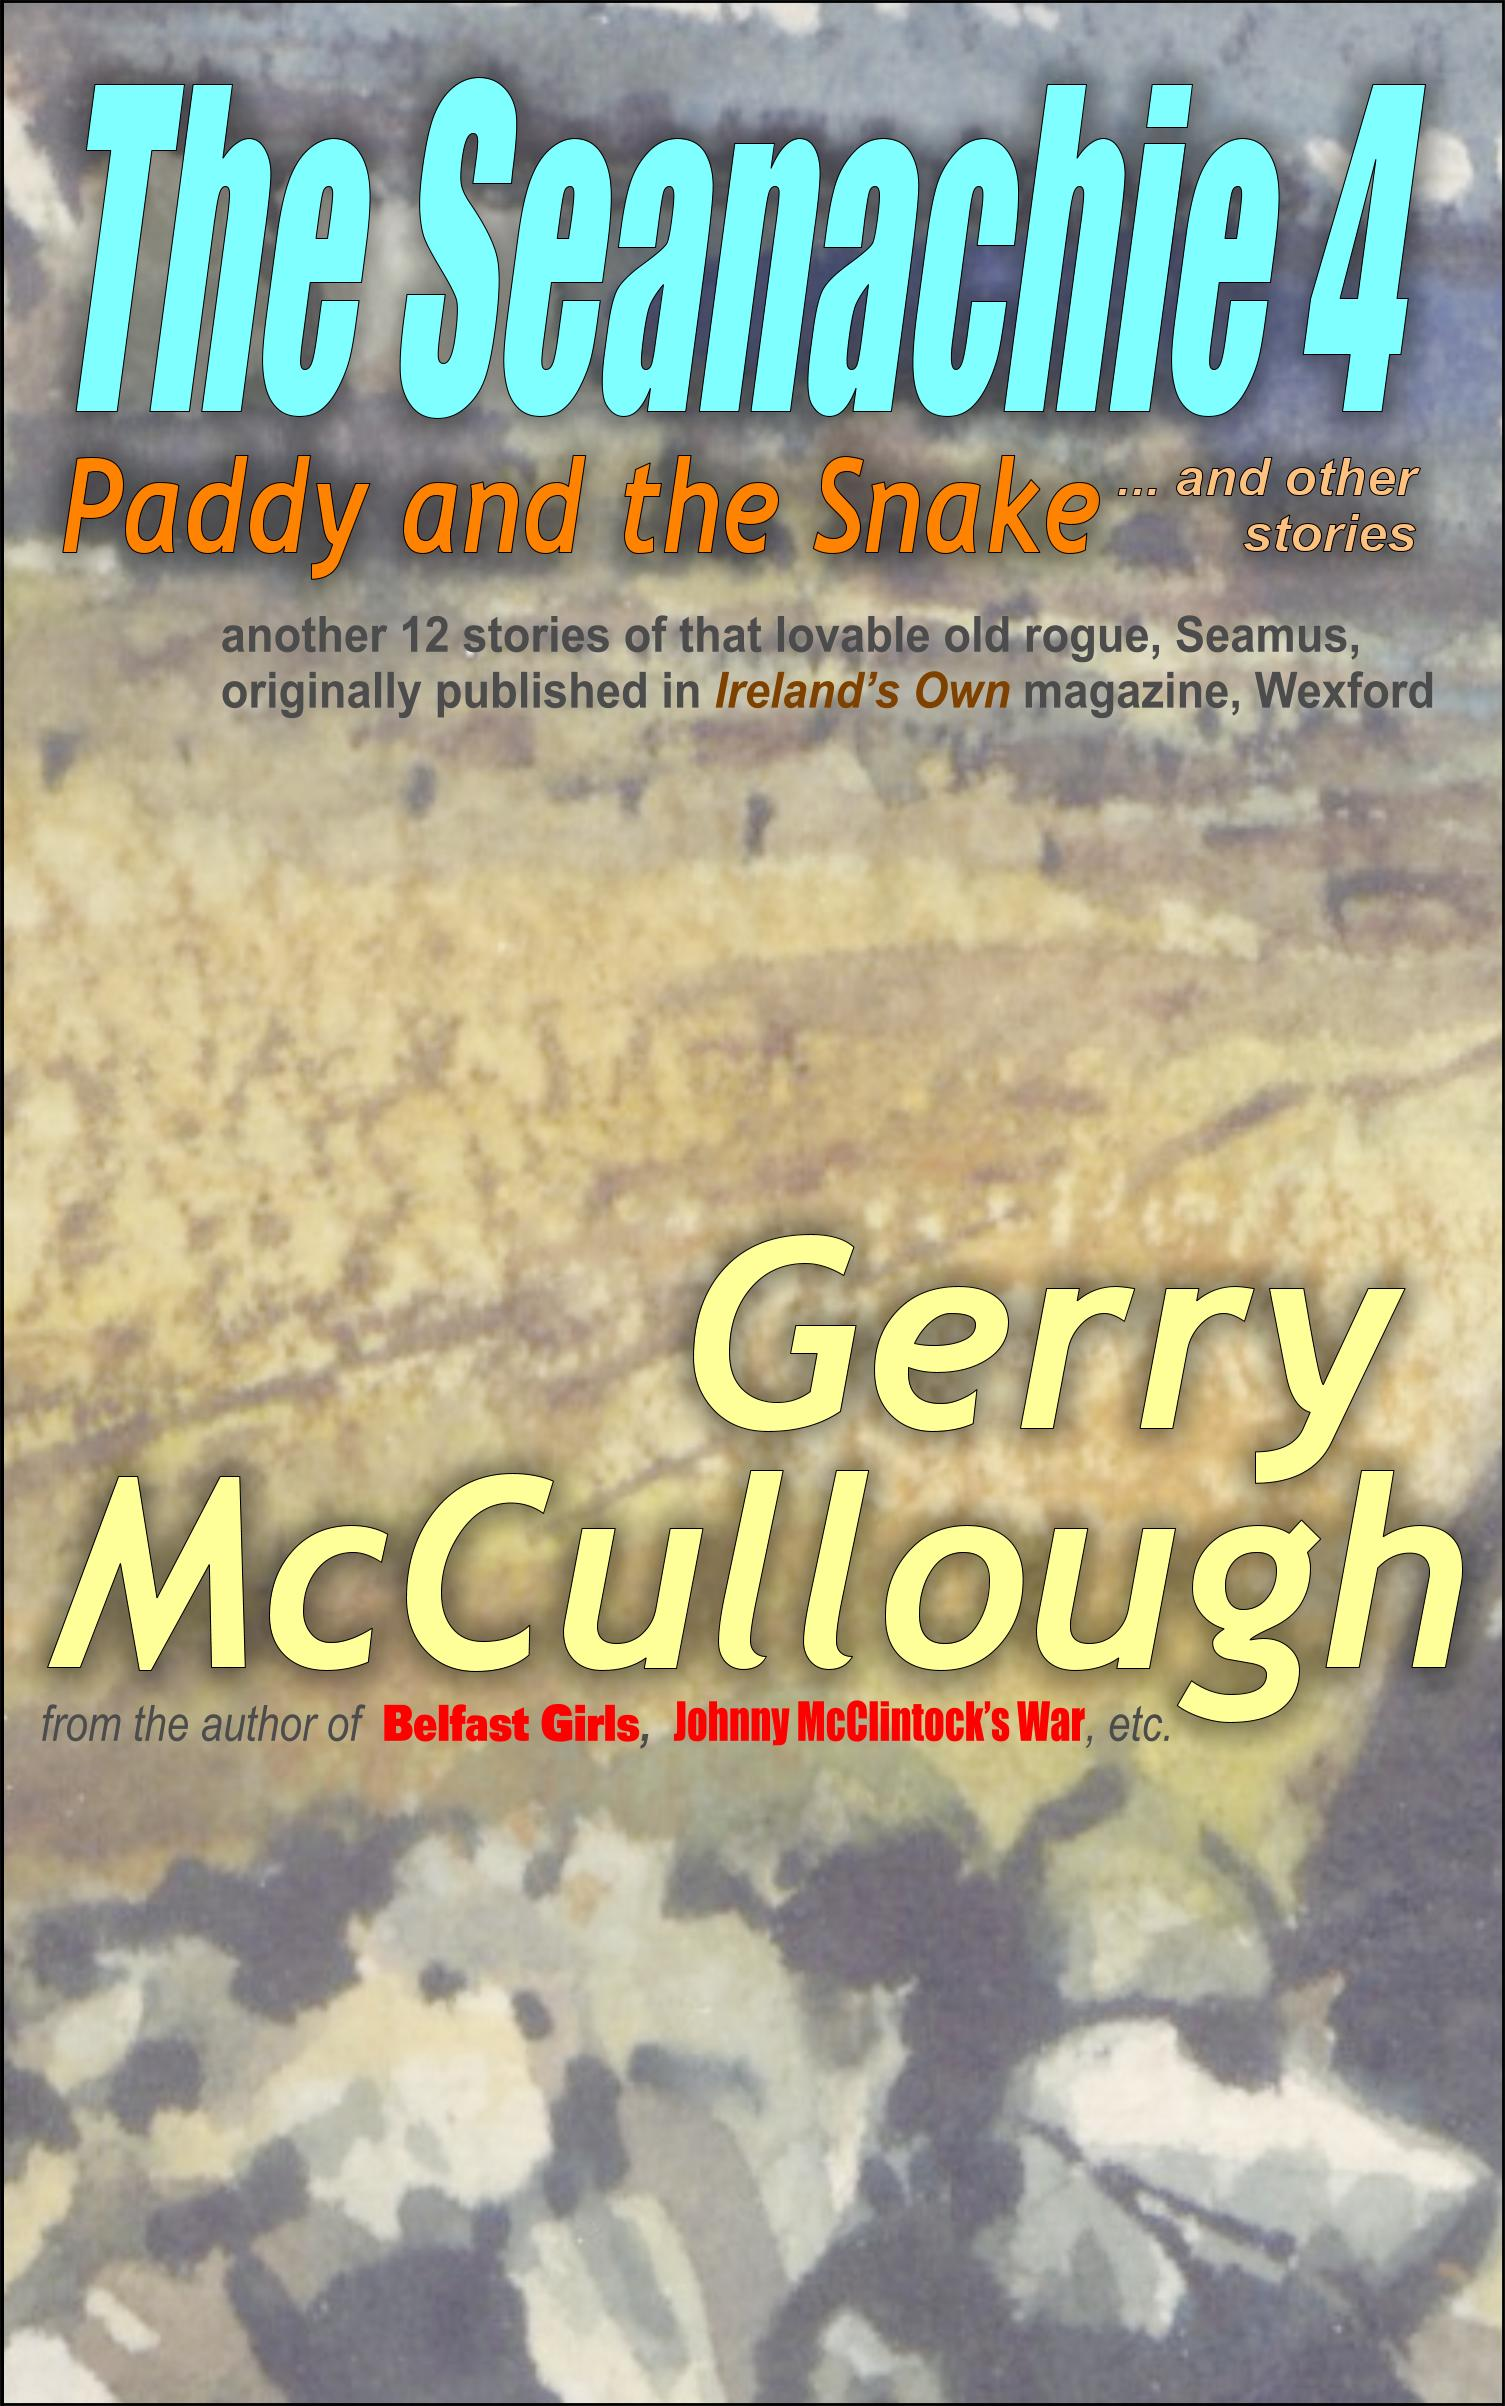 Buy 'The Seanachie 4: Paddy and the Snake and other stories' from Amazon & other outlets